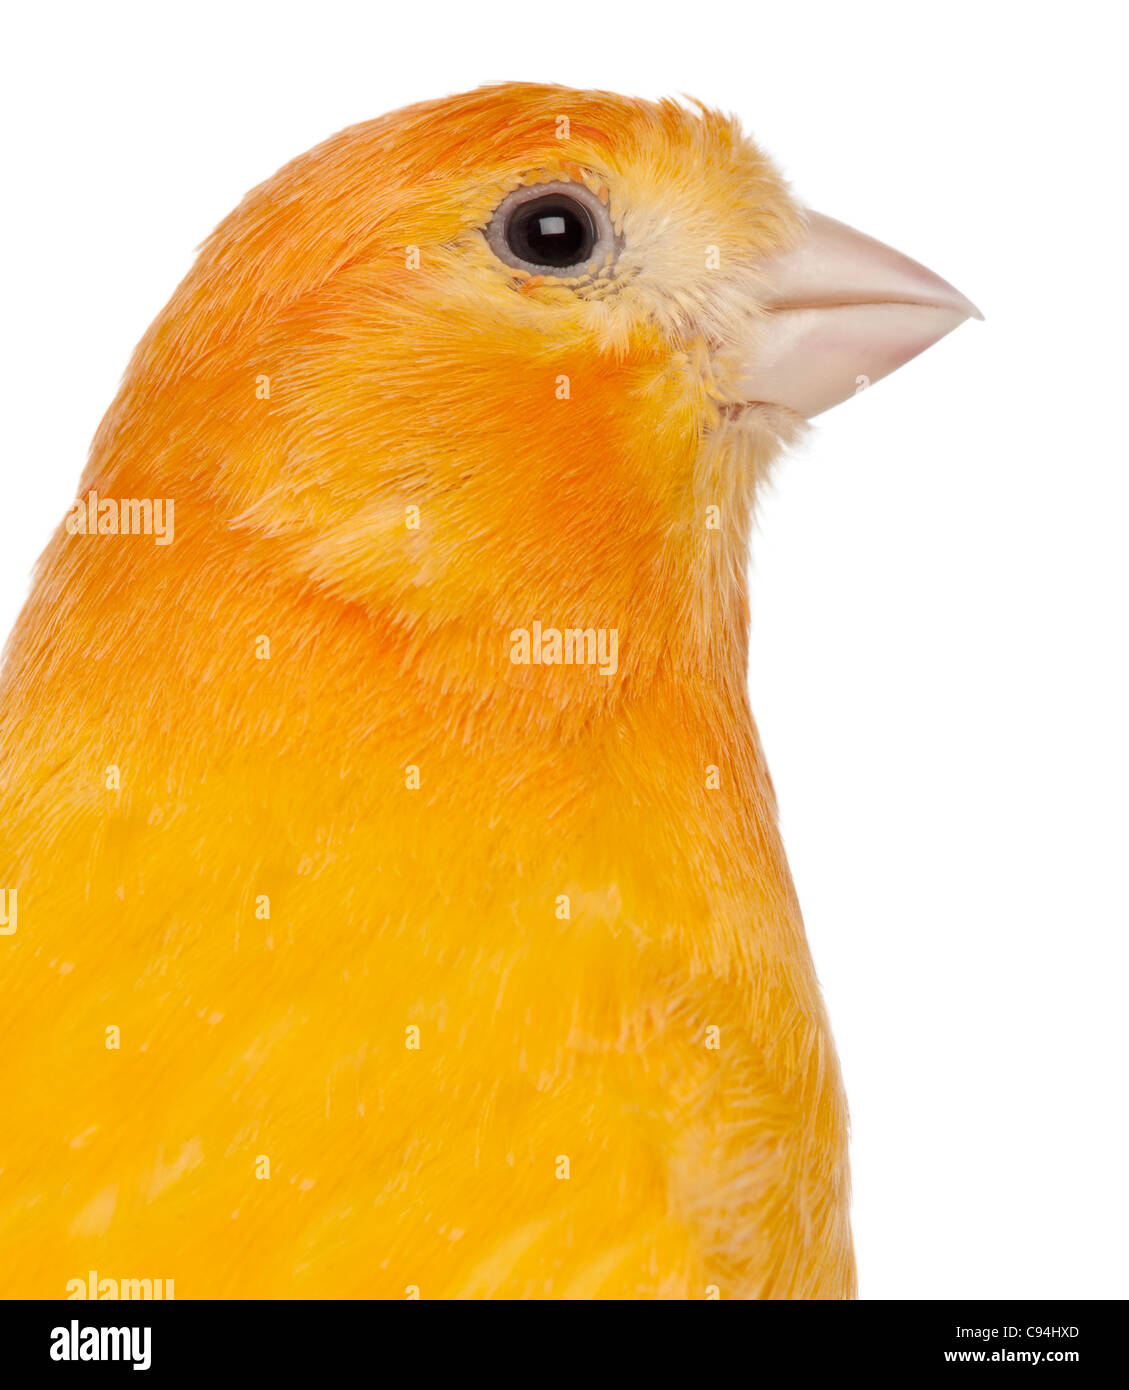 Close-up of Canary, Serinus canaria domestica, 2 years old, in front of white background - Stock Image